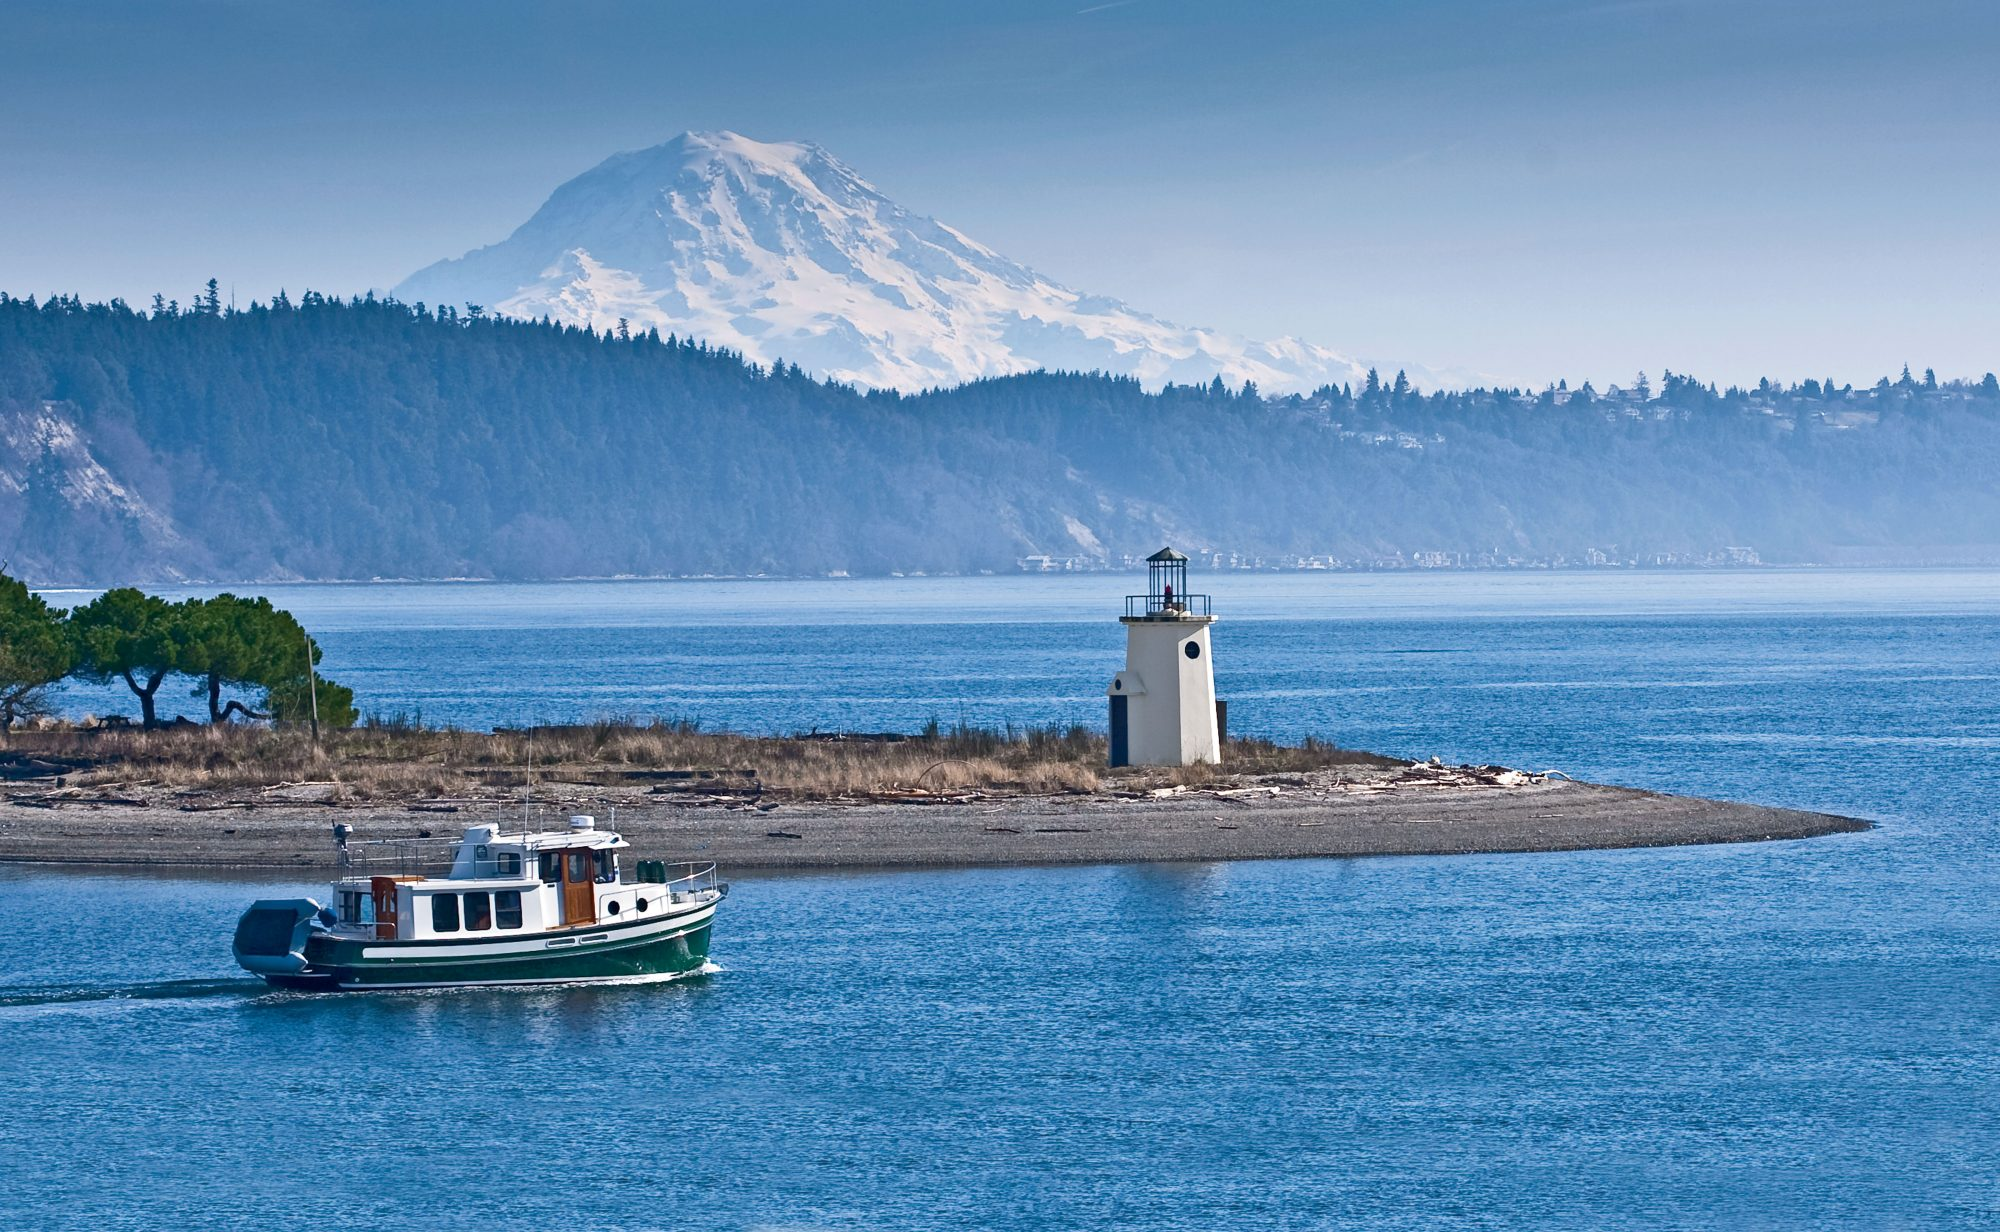 The views (both of the water and of Mt. Rainier) might be exactly what lure visitors to this charming fishing village on the Puget Sound. The Pacific Northwest gem is a boater's paradise and also a haven for retirees, with the highest ratio of retirement centers per 1,000 people than anywhere else in the country and 25 percent of the population made up of seniors.